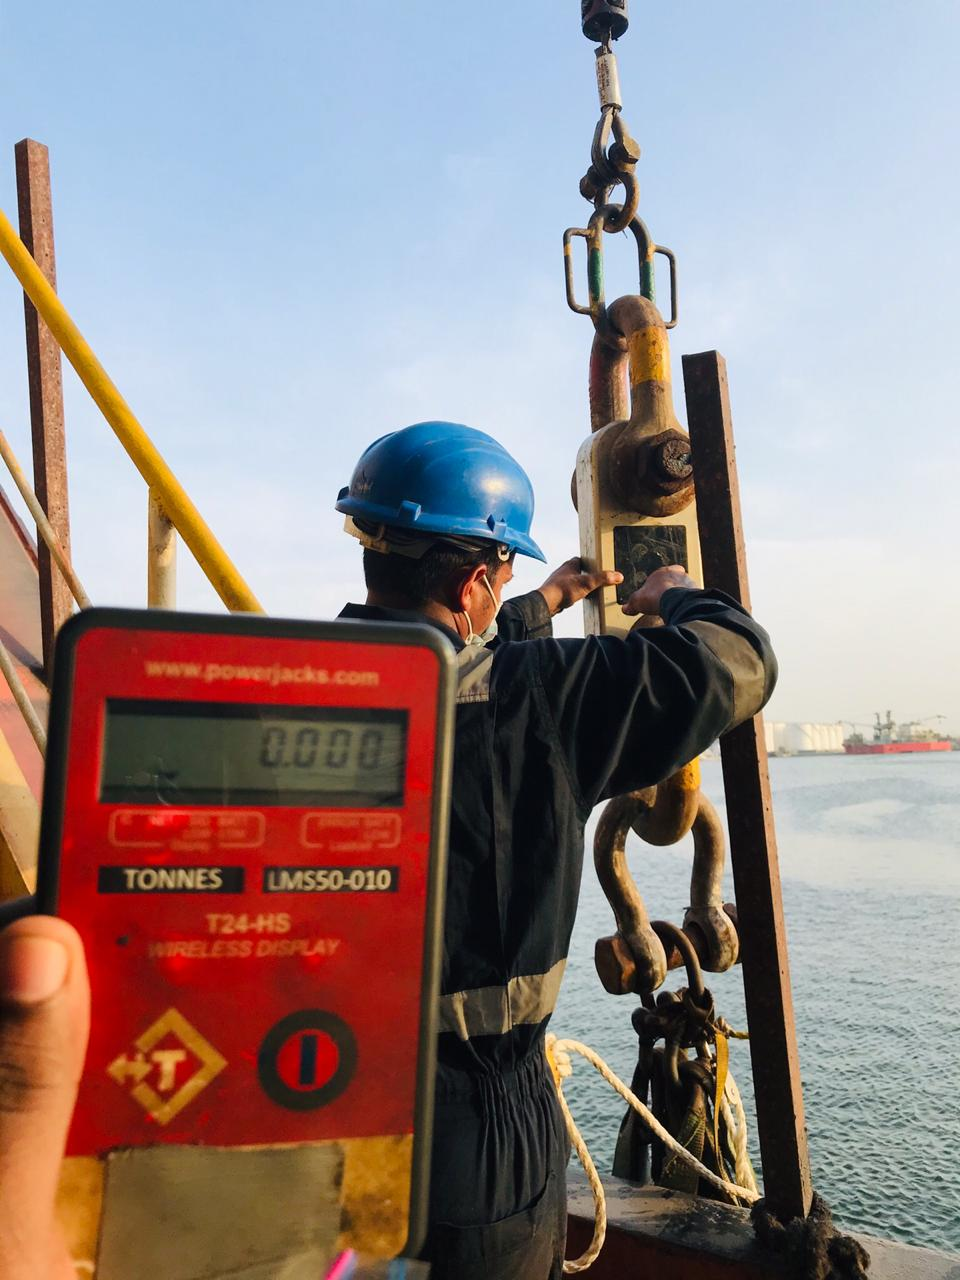 Rescue Boat and Launching appliances 5 yearly inspection and load test at Sharjah